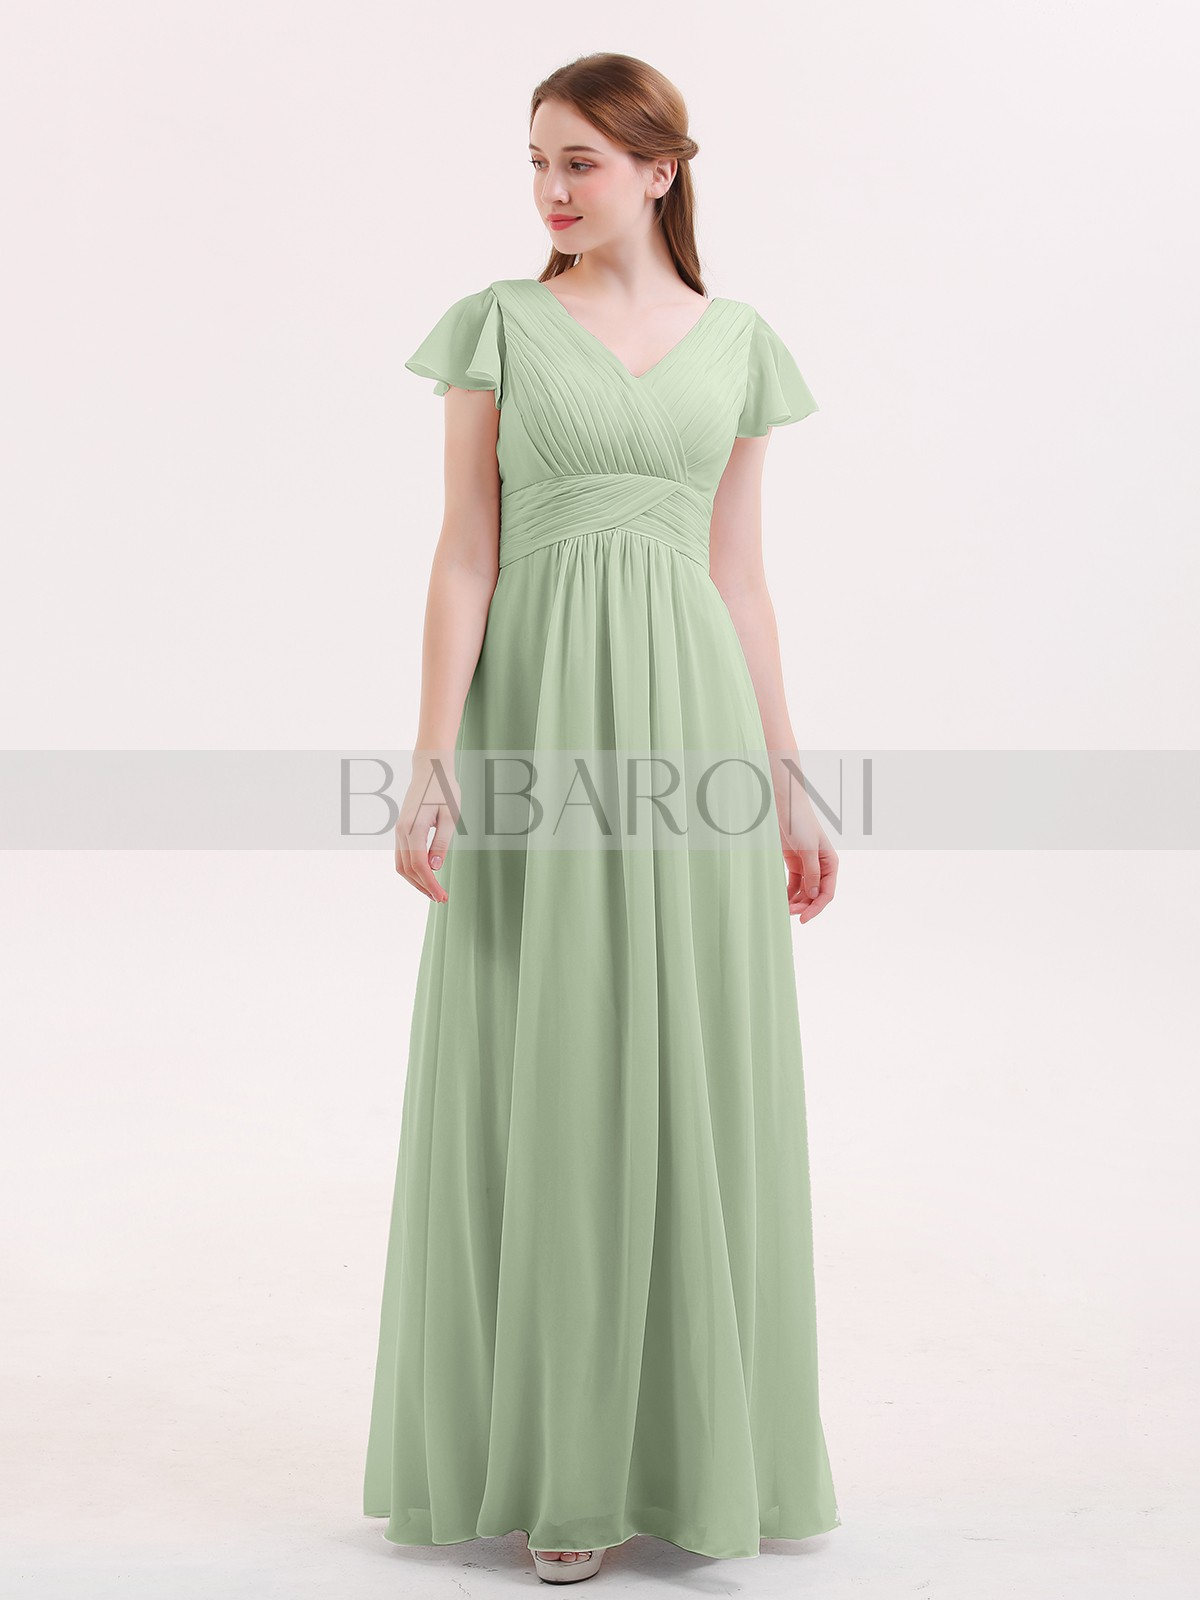 b9caeda498b24 ... Sleeves Bridesmaid Dresses; Babaroni Jacqueline. A-line Chiffon Dusty  Sage Zipper Ruched, Pleated Floor-length V-neck. Loading zoom